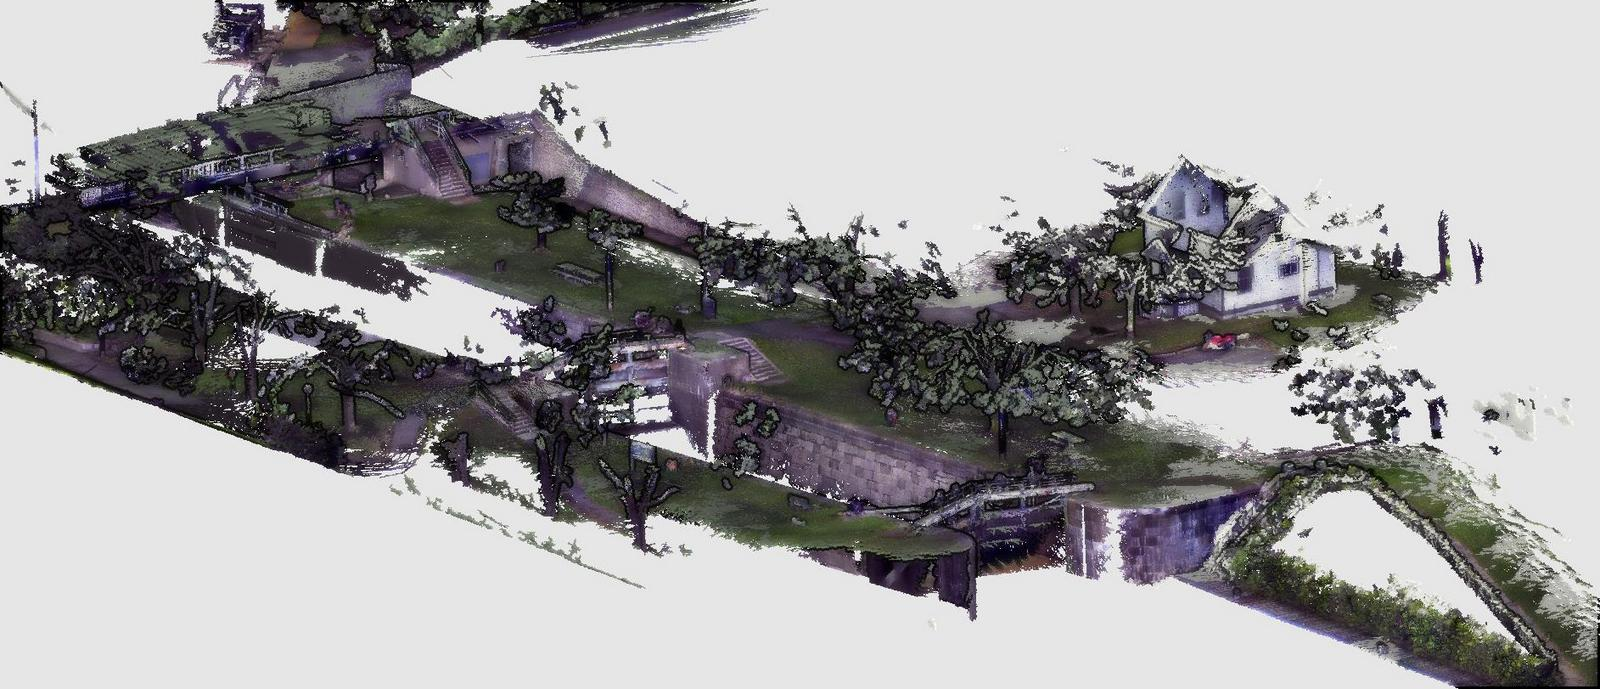 Images from point cloud model of Hogs Back Locks - scanned with Kaarta Contour